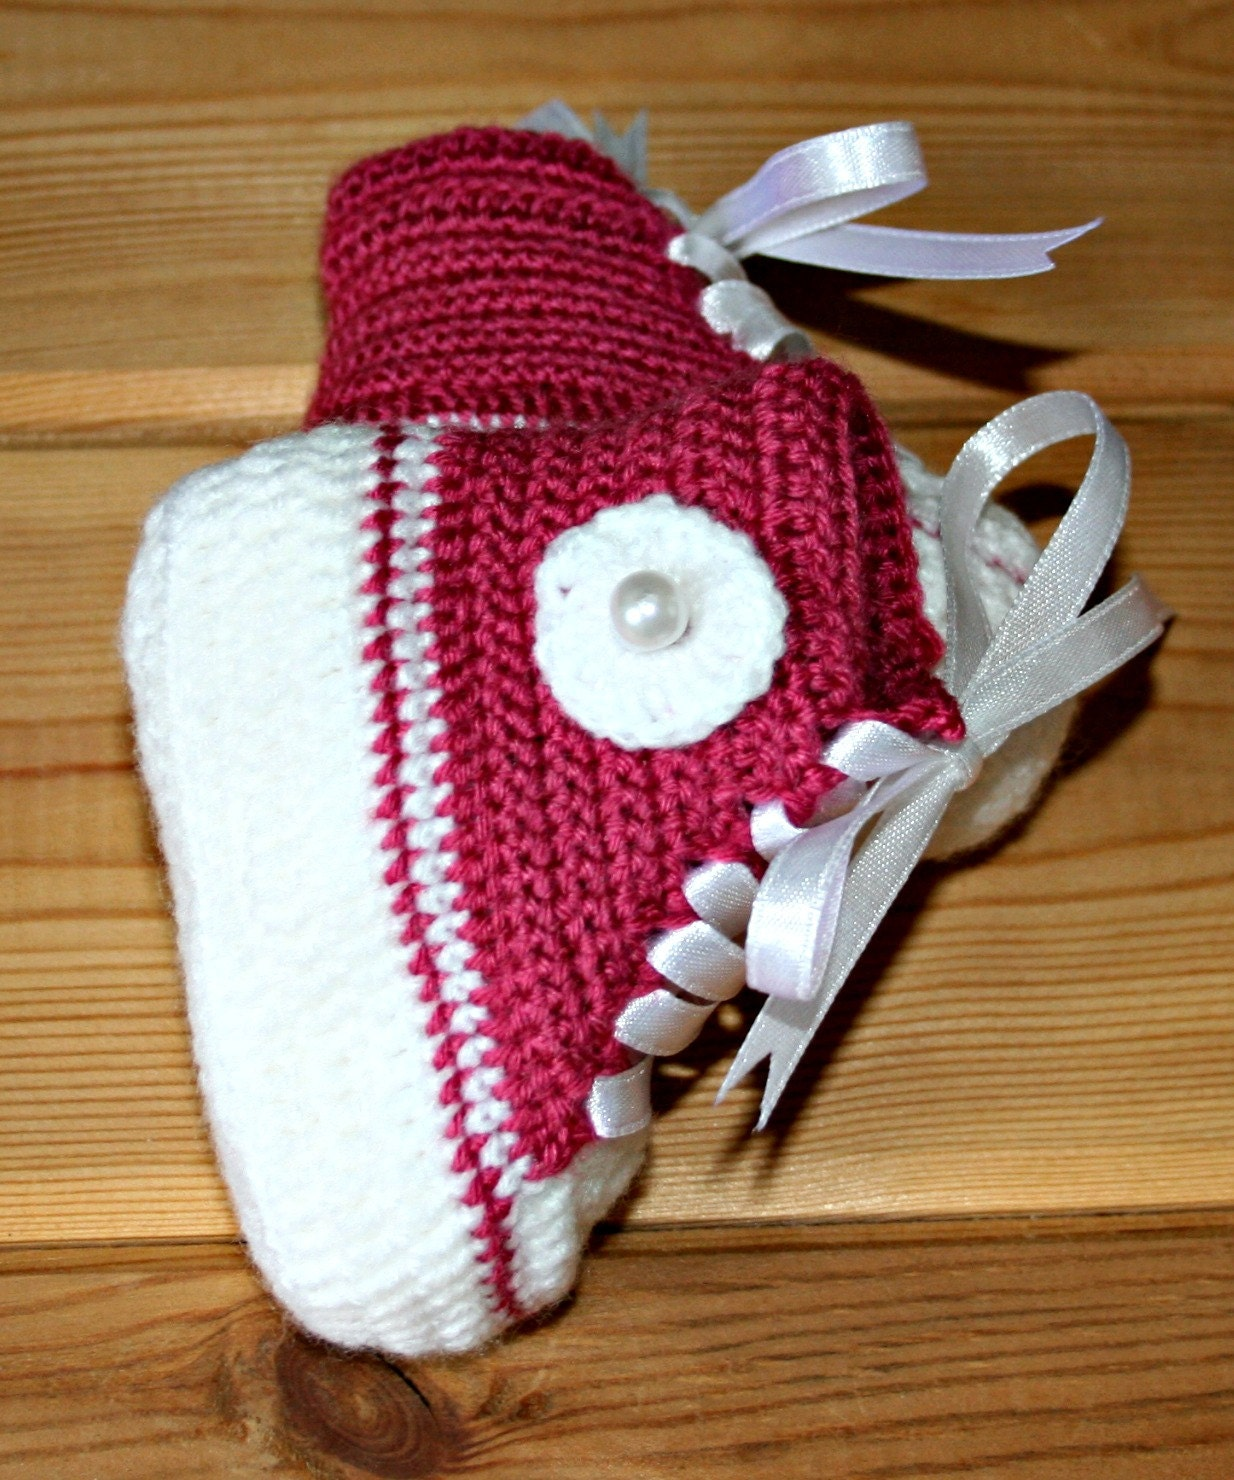 Newborn baby girl handmade crochet high top converse style booties in raspberry pink & white 0 to 3 mths by crochetyknitsnbits Gifts Layette - crochetyknitsnbits